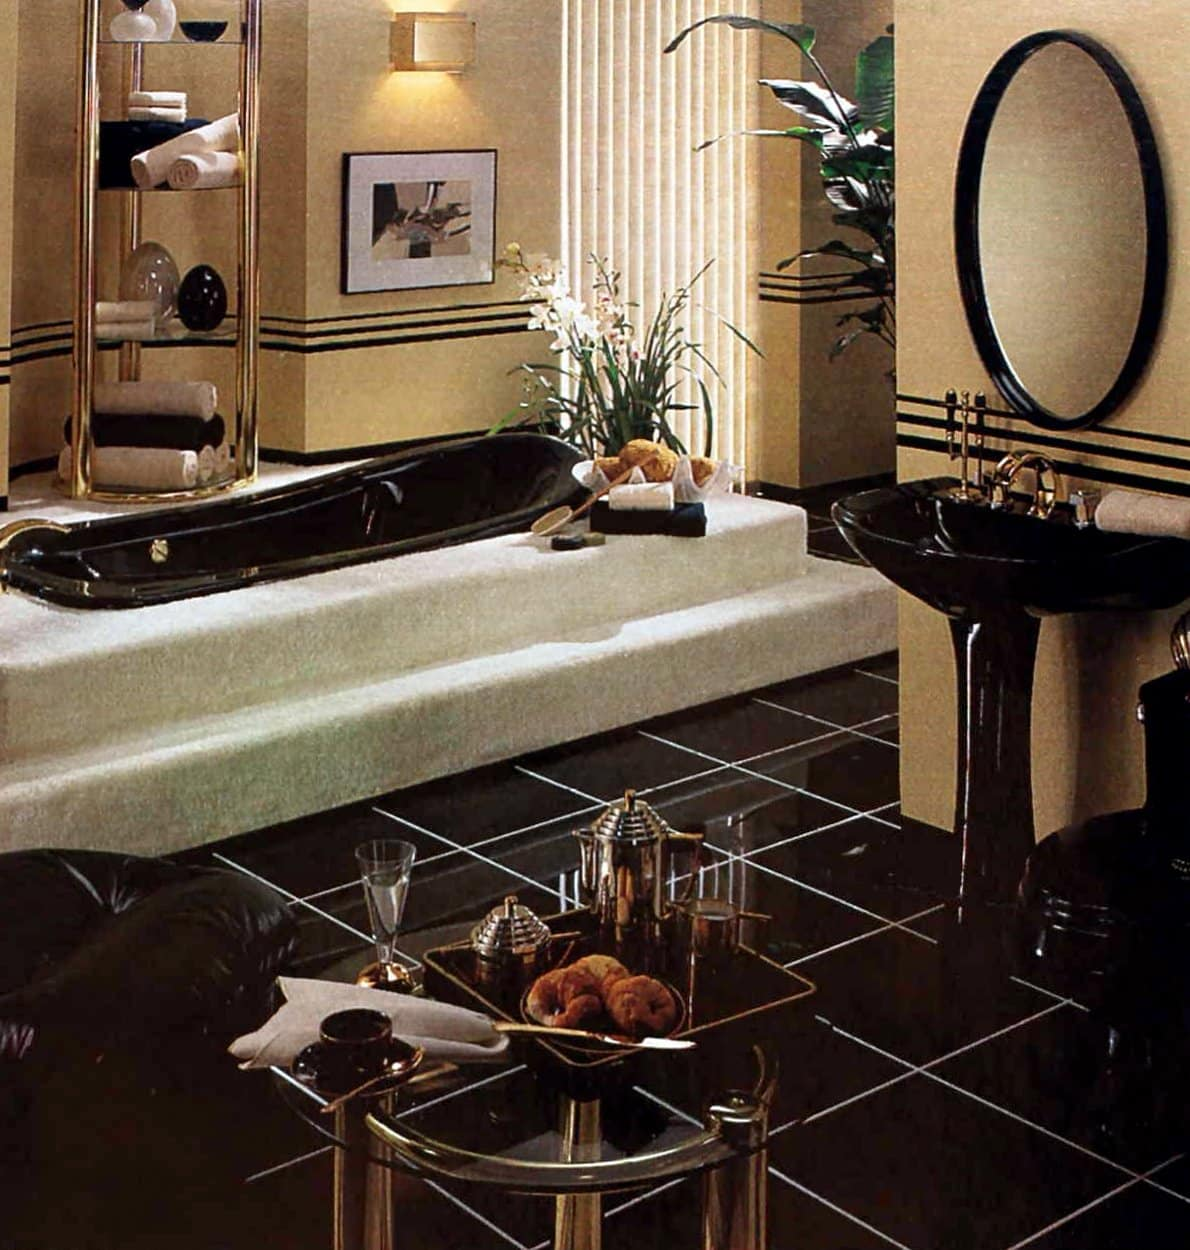 Sleek 80s-style bathroom with black floor and fixtures